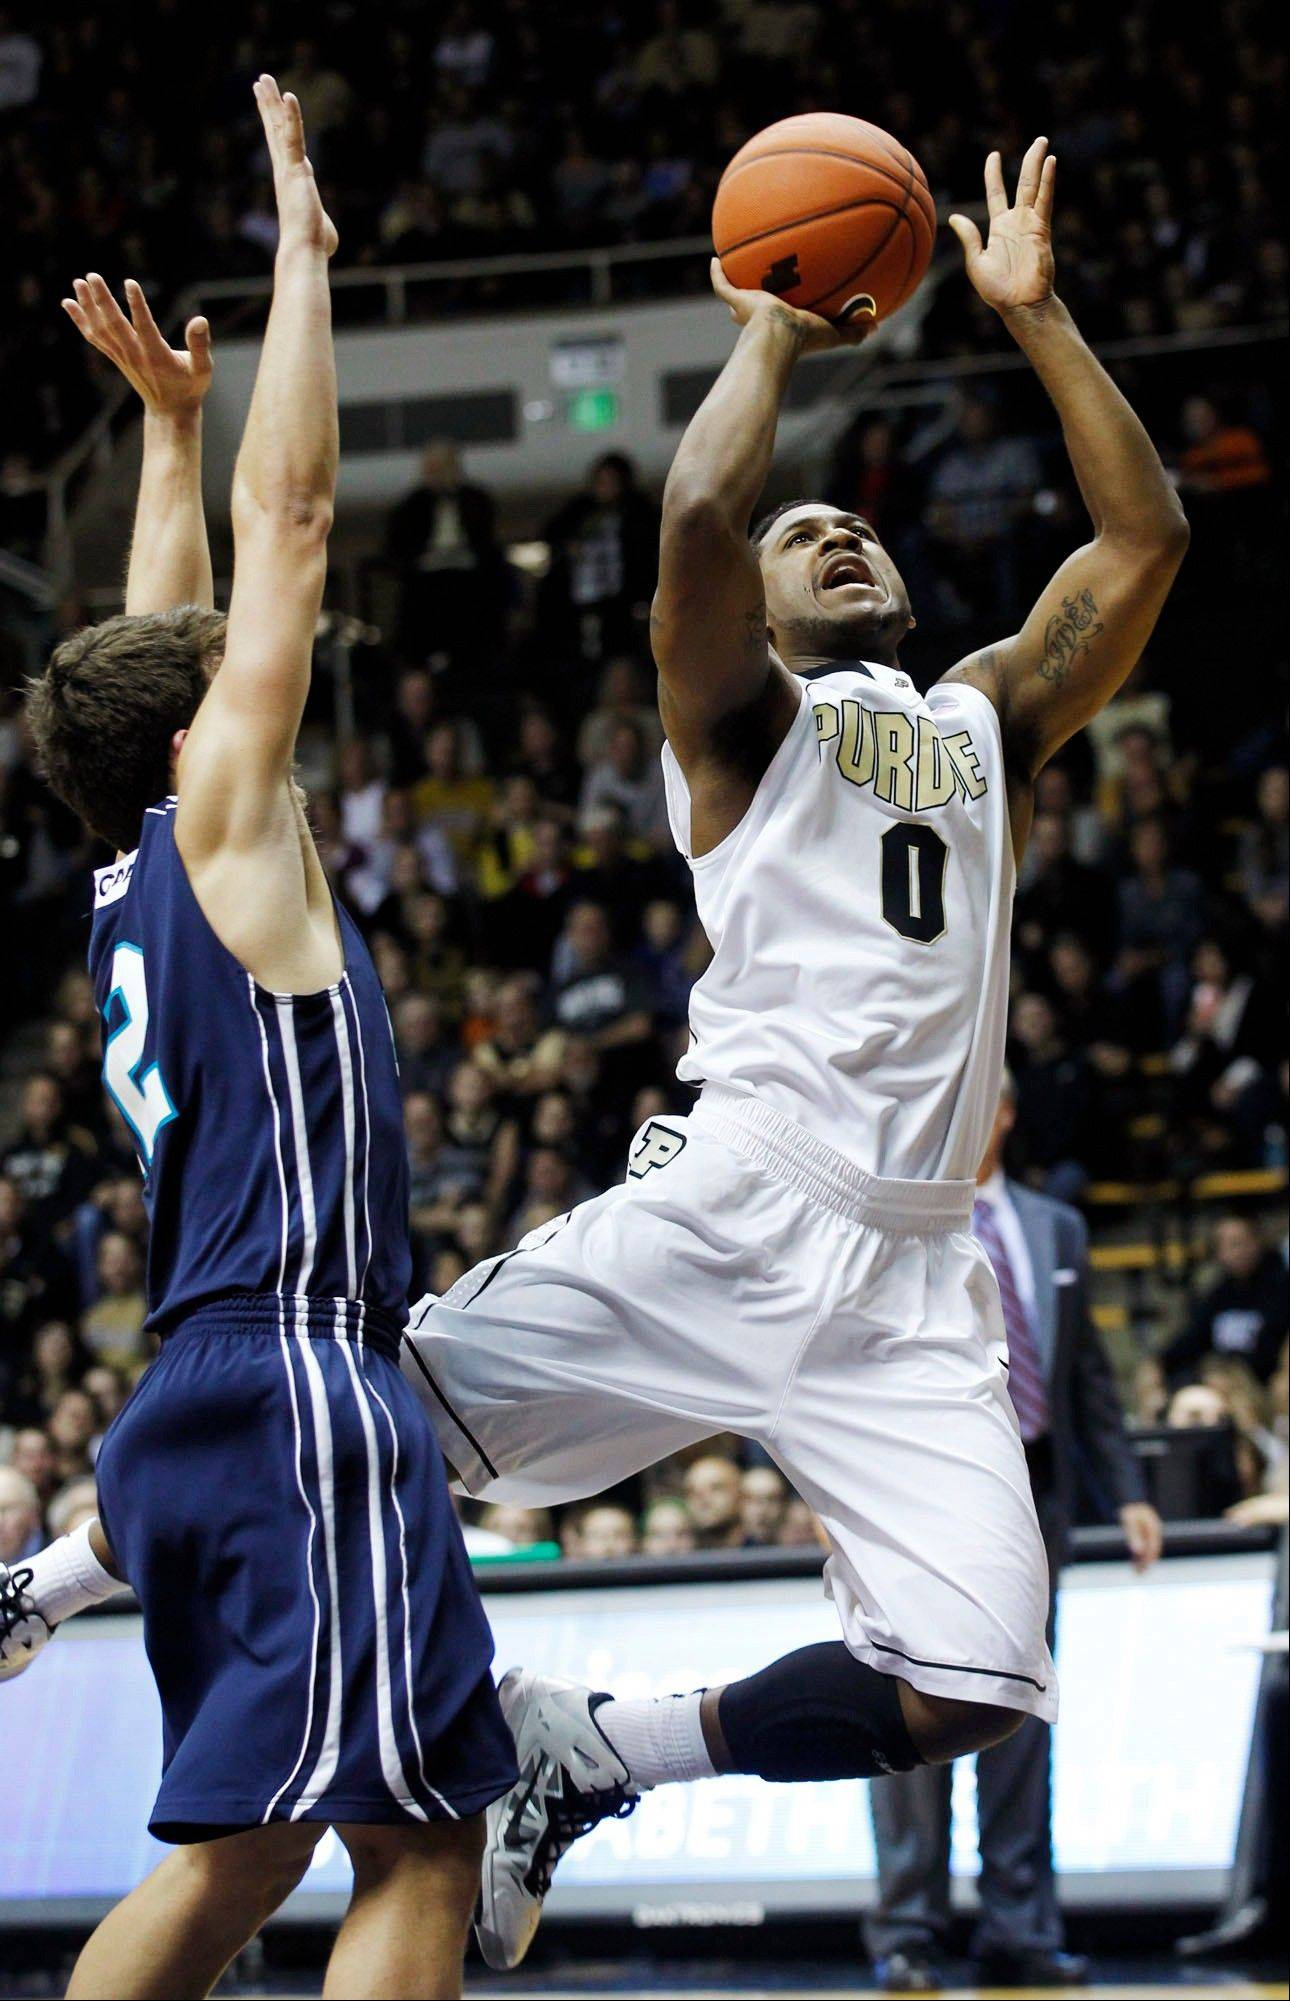 Purdue�s Terone Johnson shoots while being fouled by North Carolina-Wilmington�s Tanner Milson during the first half of their game Wednesday in West Lafayette, Ind.